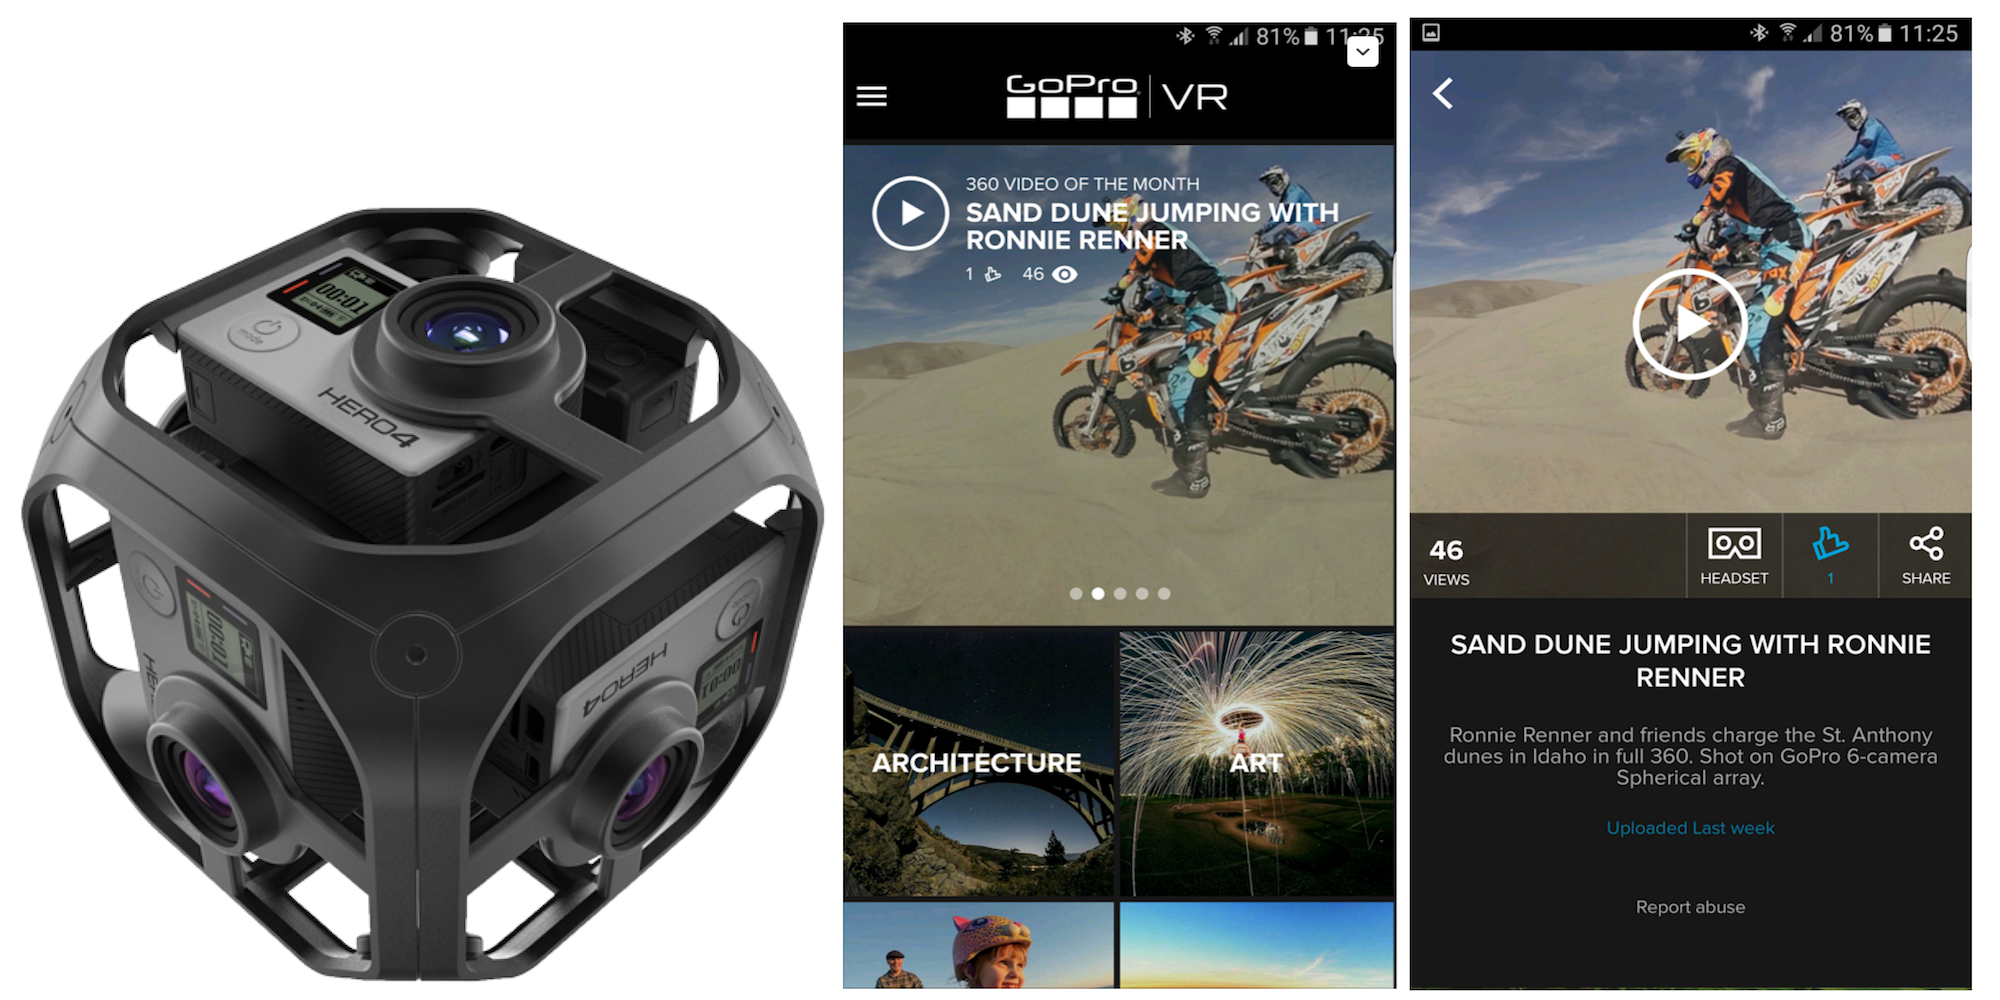 GoPro-VR-Android-app